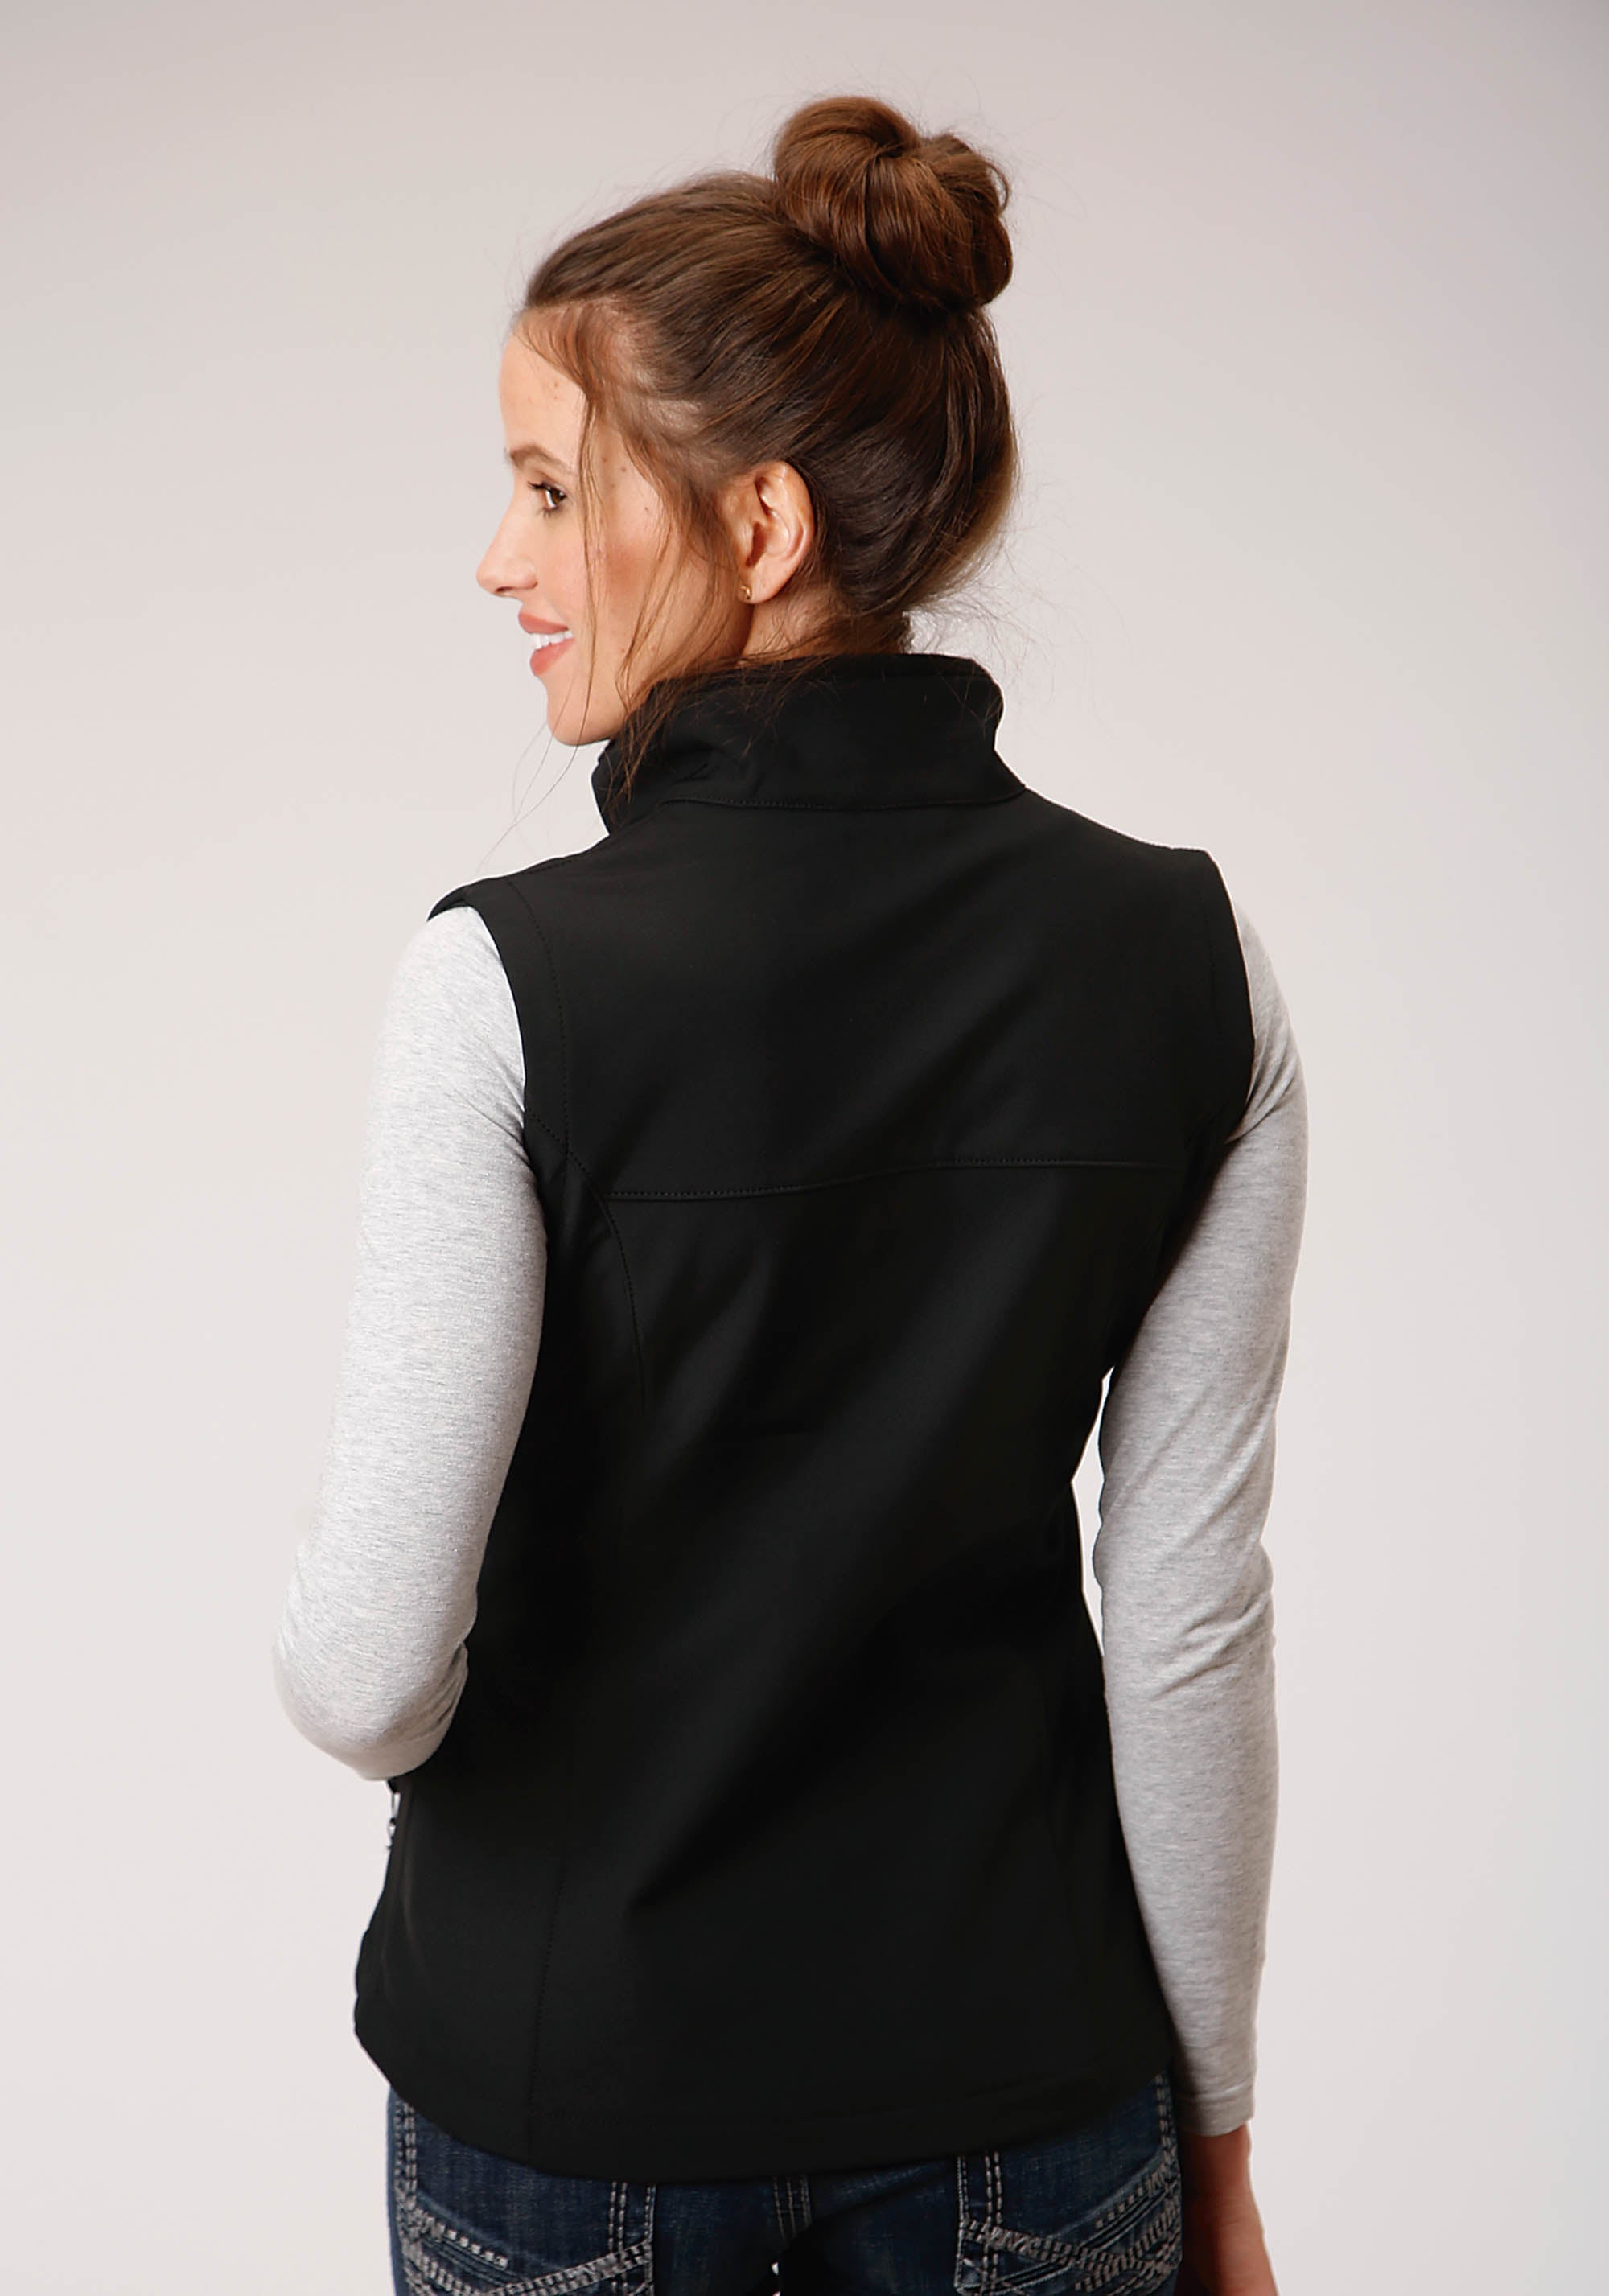 ROPER WOMENS BLACK 00259 BLACK W/BLACK SOFTSHELL VEST ROPER OUTERWEAR- WOMEN'S IN STOCK VEST